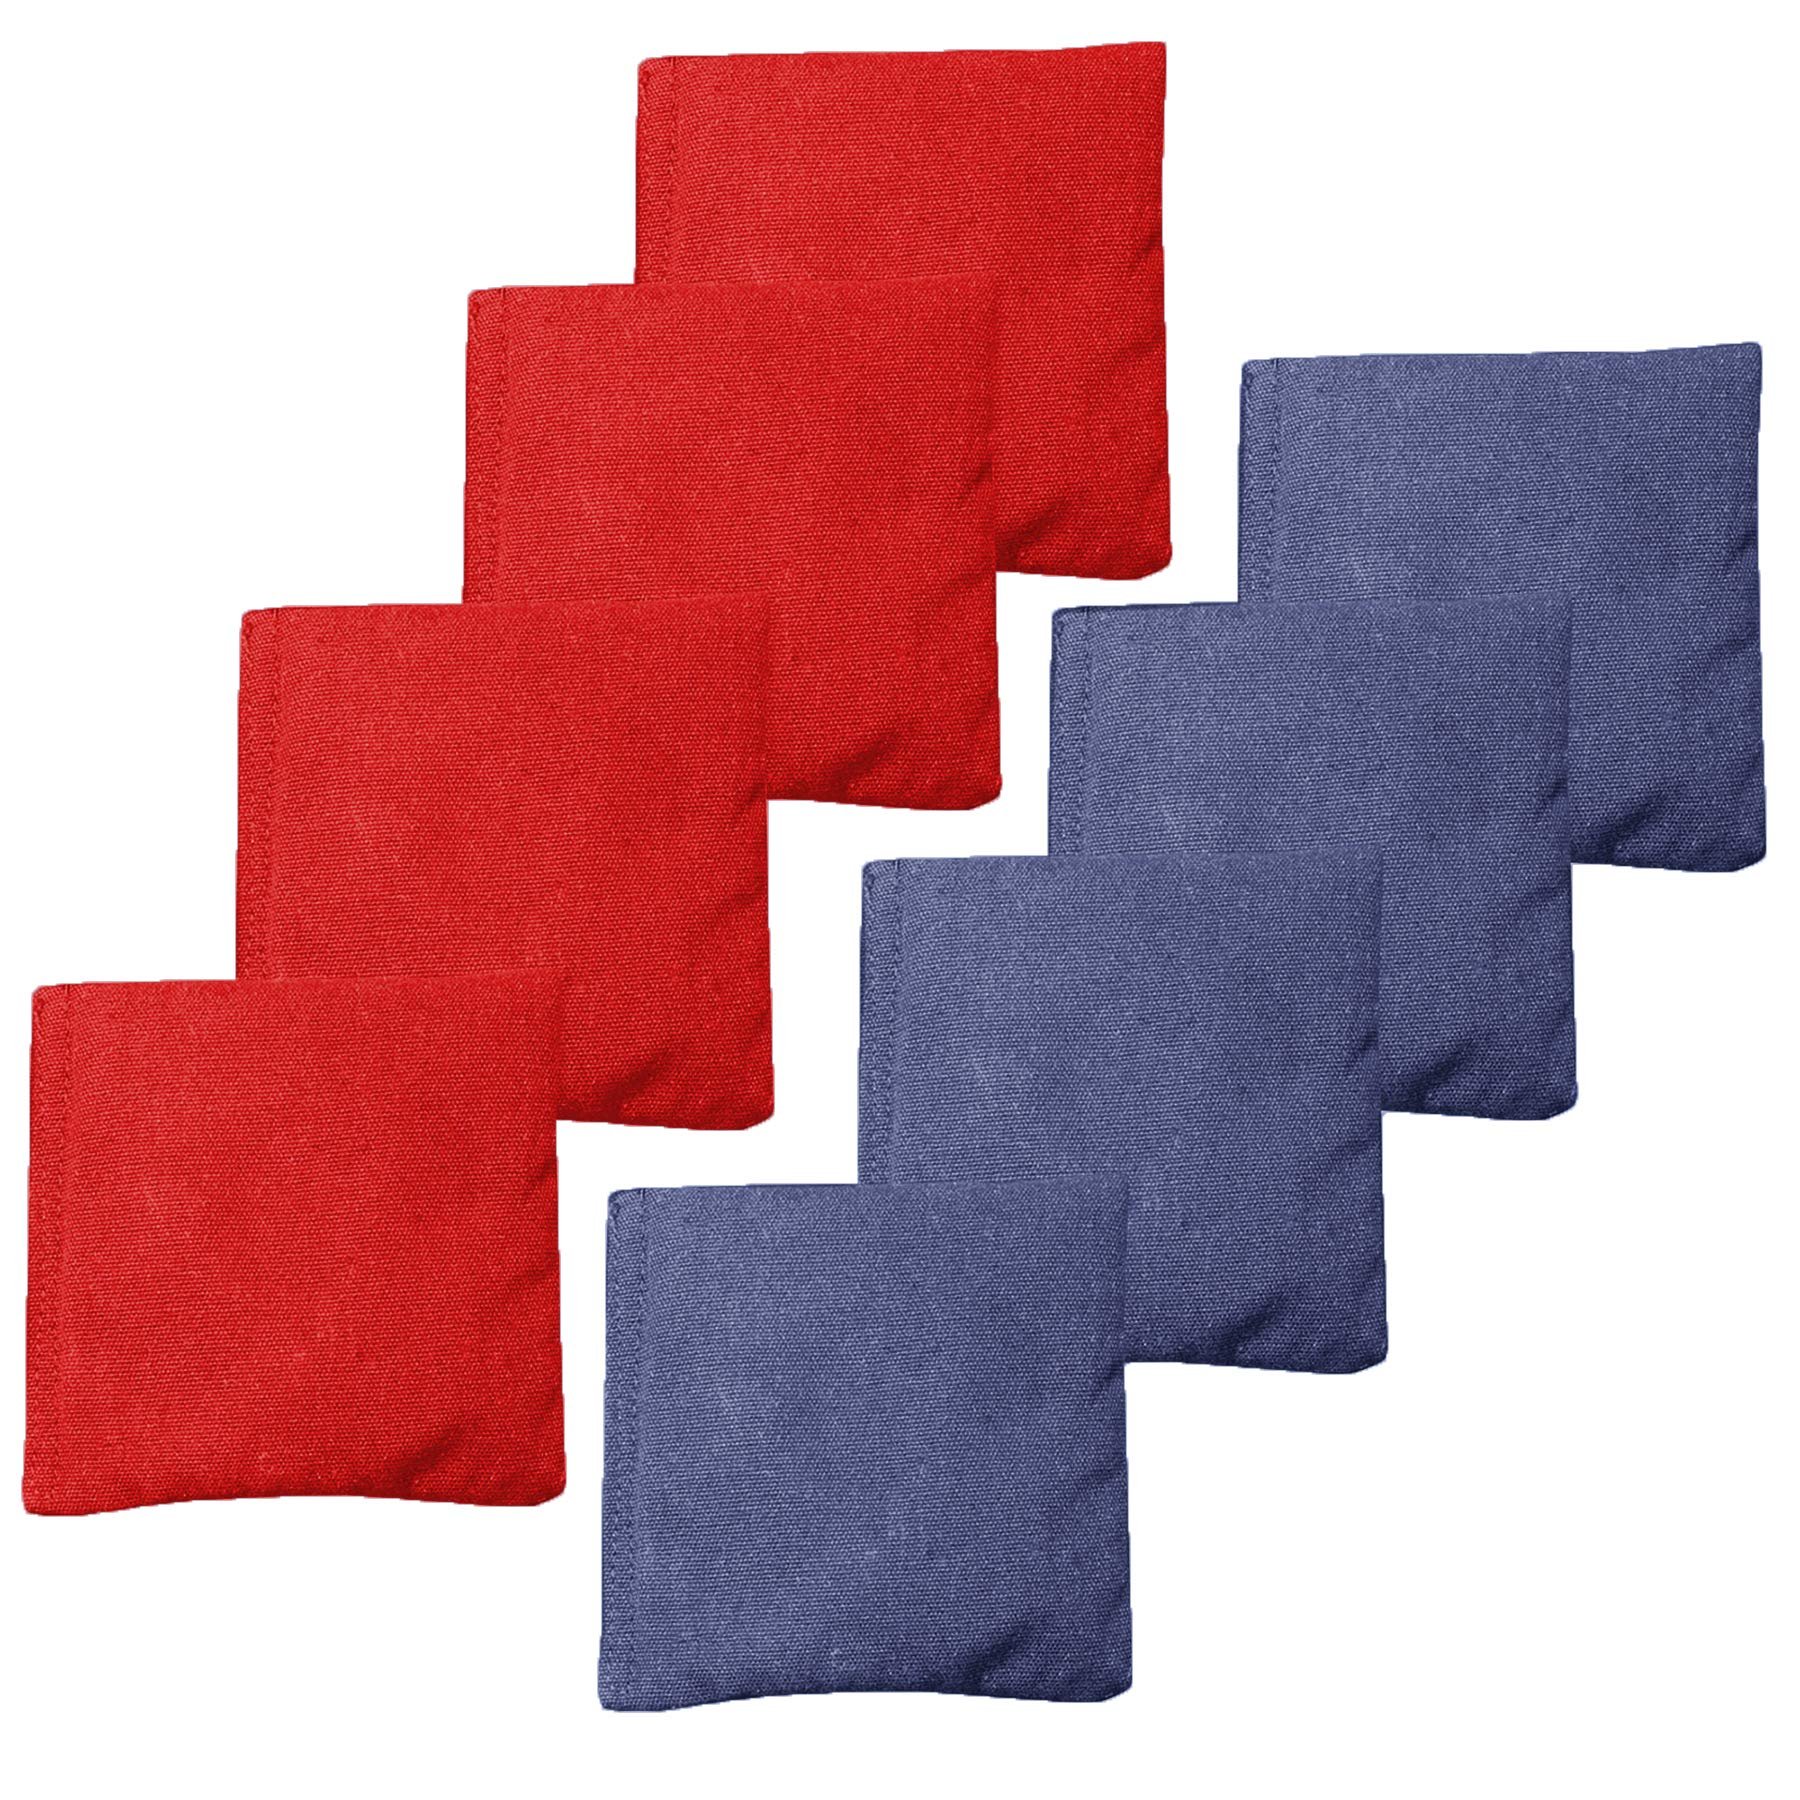 All Weather Cornhole Bean Bags Set of 8 - Duck Cloth, Regulation Size & Weight - Red & Navy Blue by Barcaloo